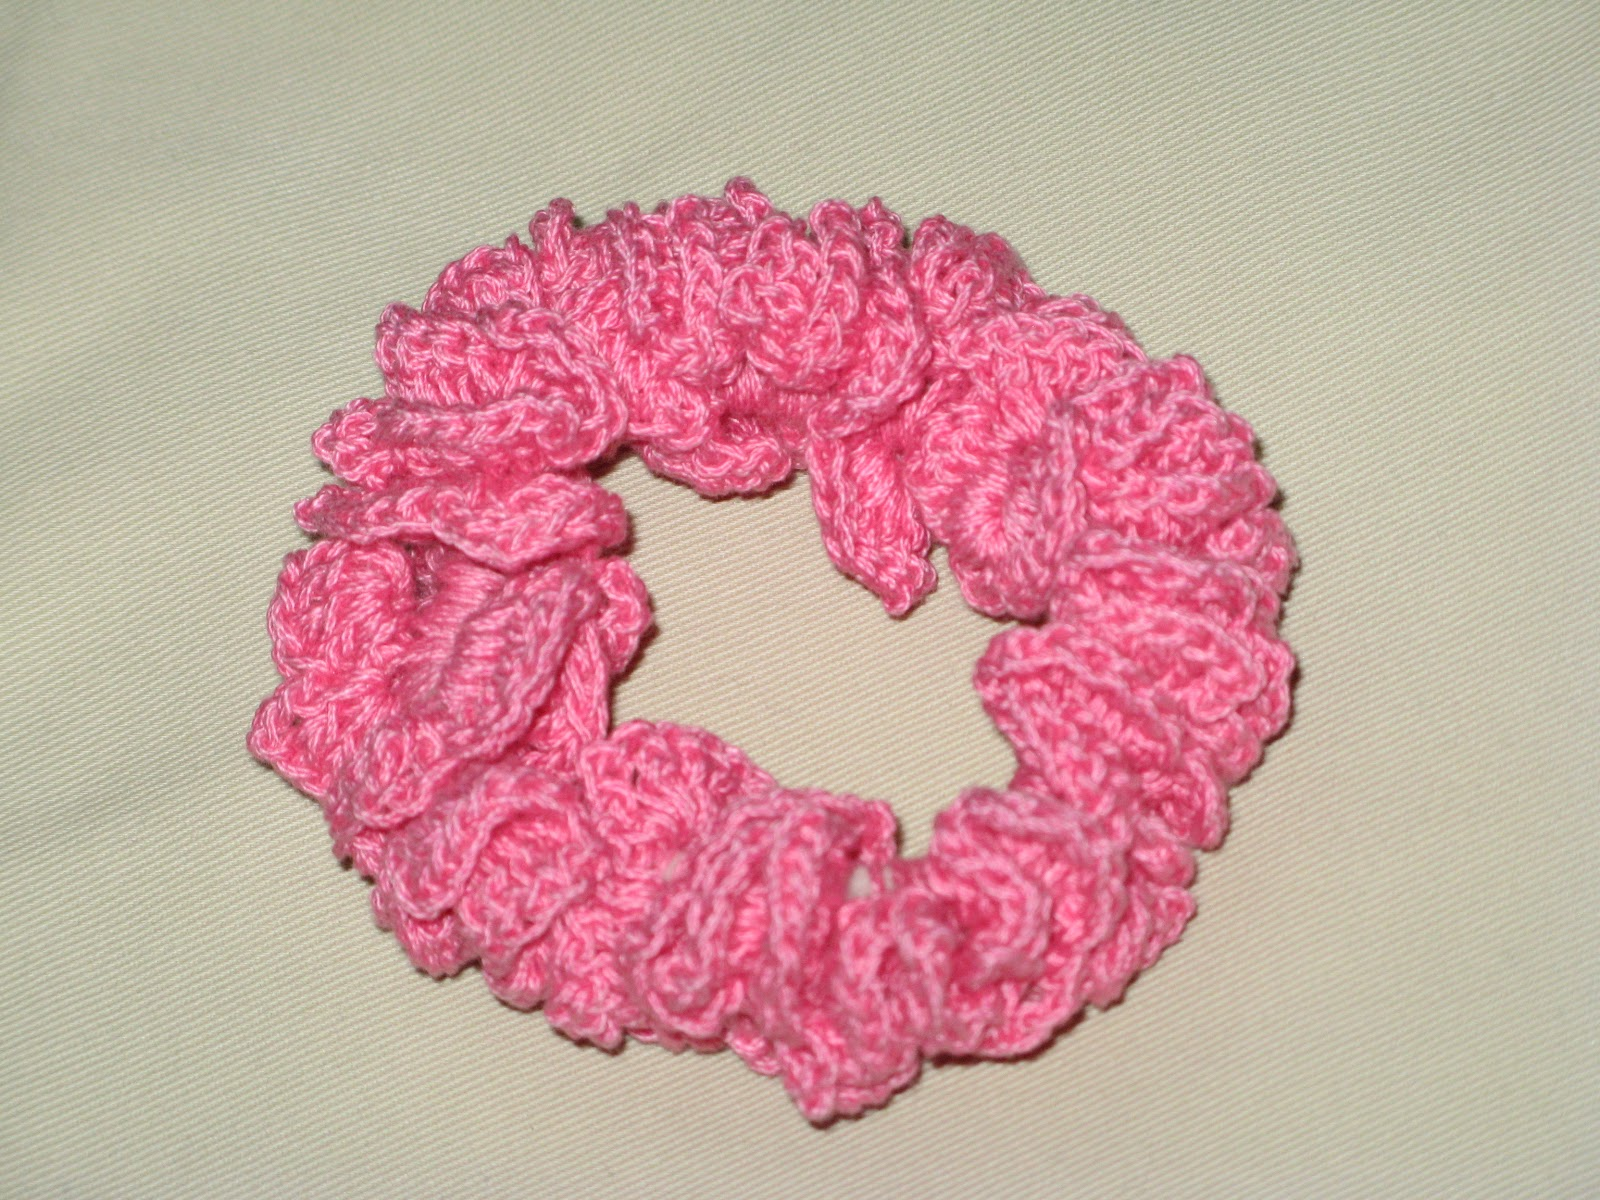 Crochet Hair Scrunchie : Creat - E - witty Unleashed: Crochet hair scrunchie